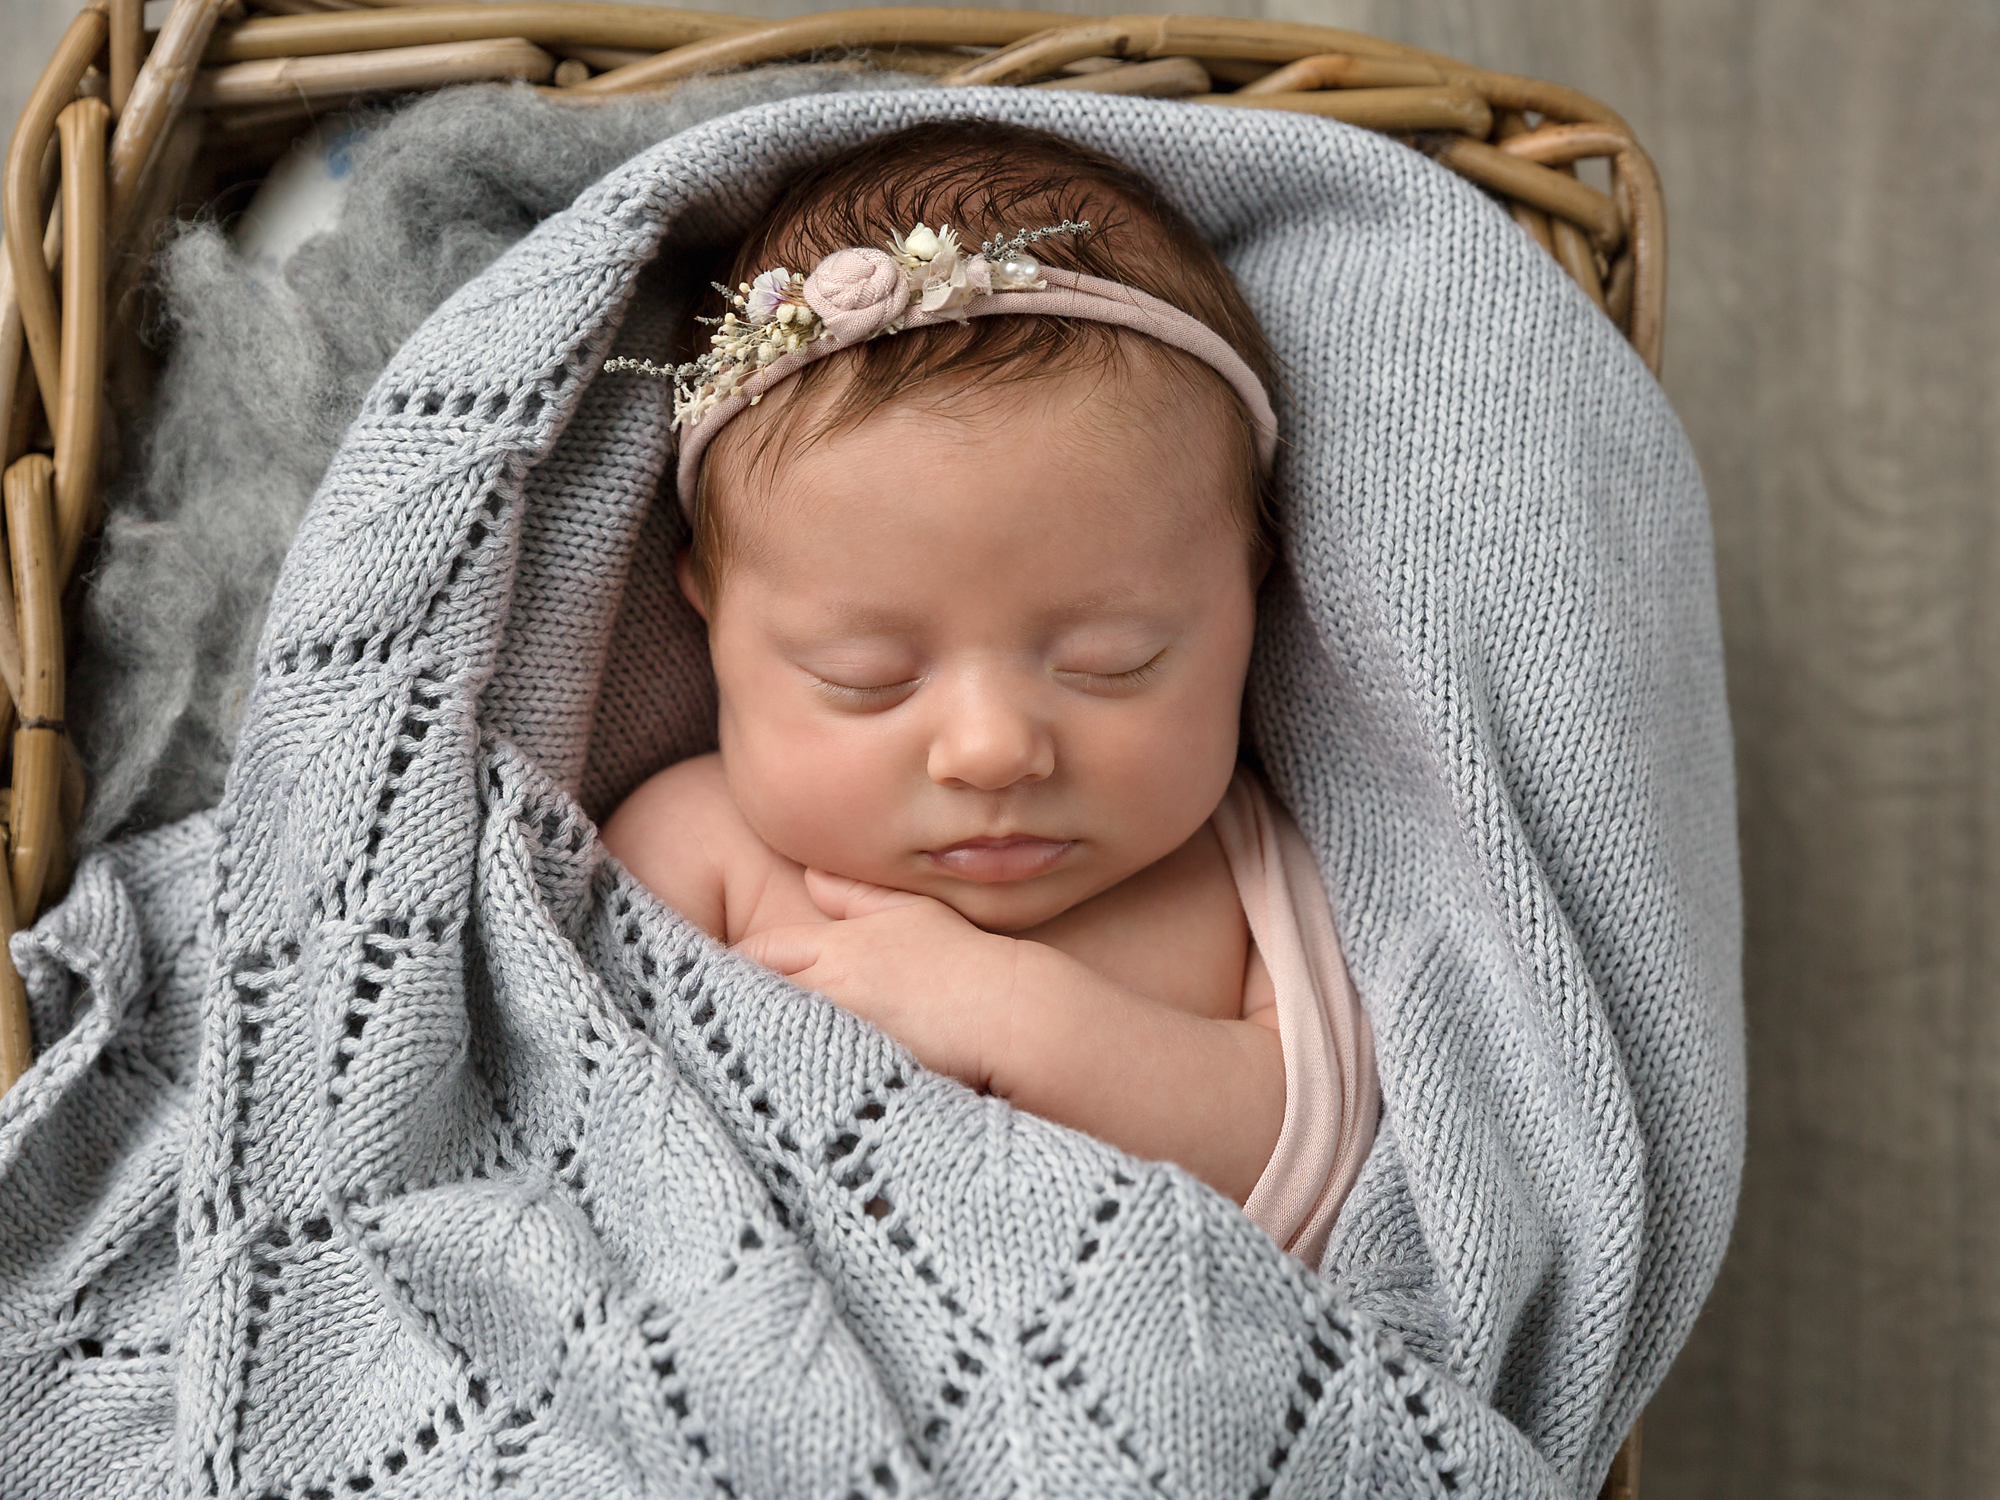 Newborn and baby photographer in cardiff, caerphilly, south wales